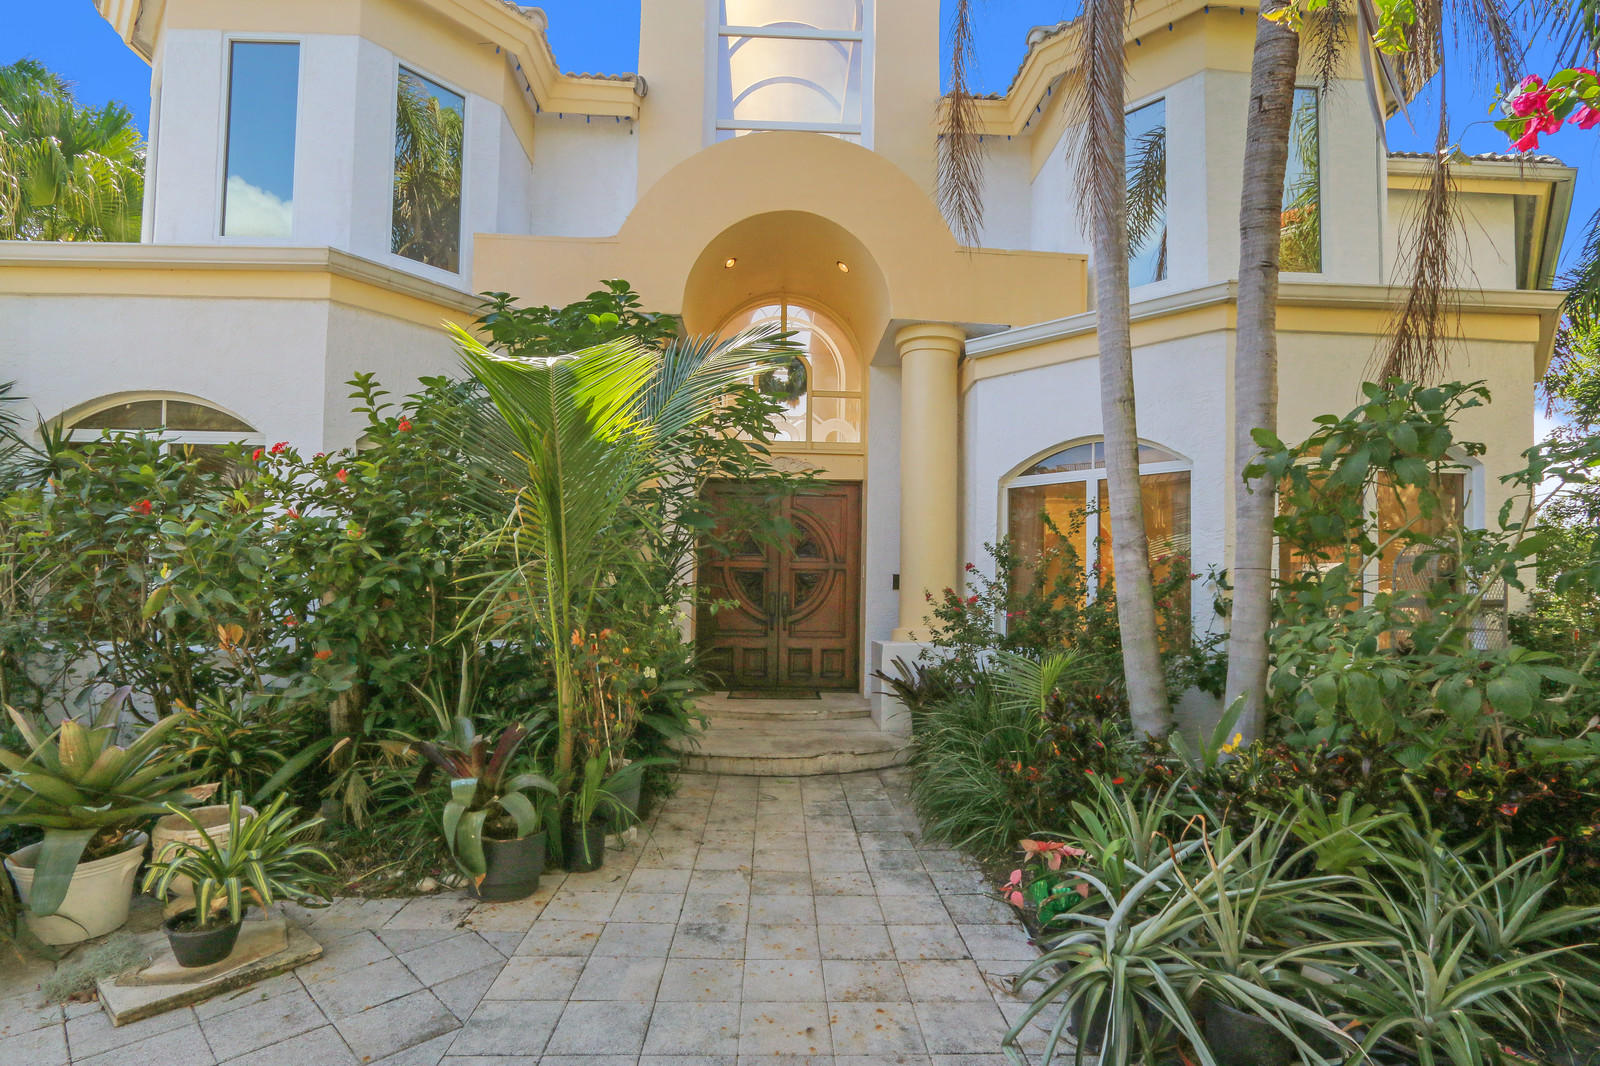 DELRAY BCH SHORES PROPERTY